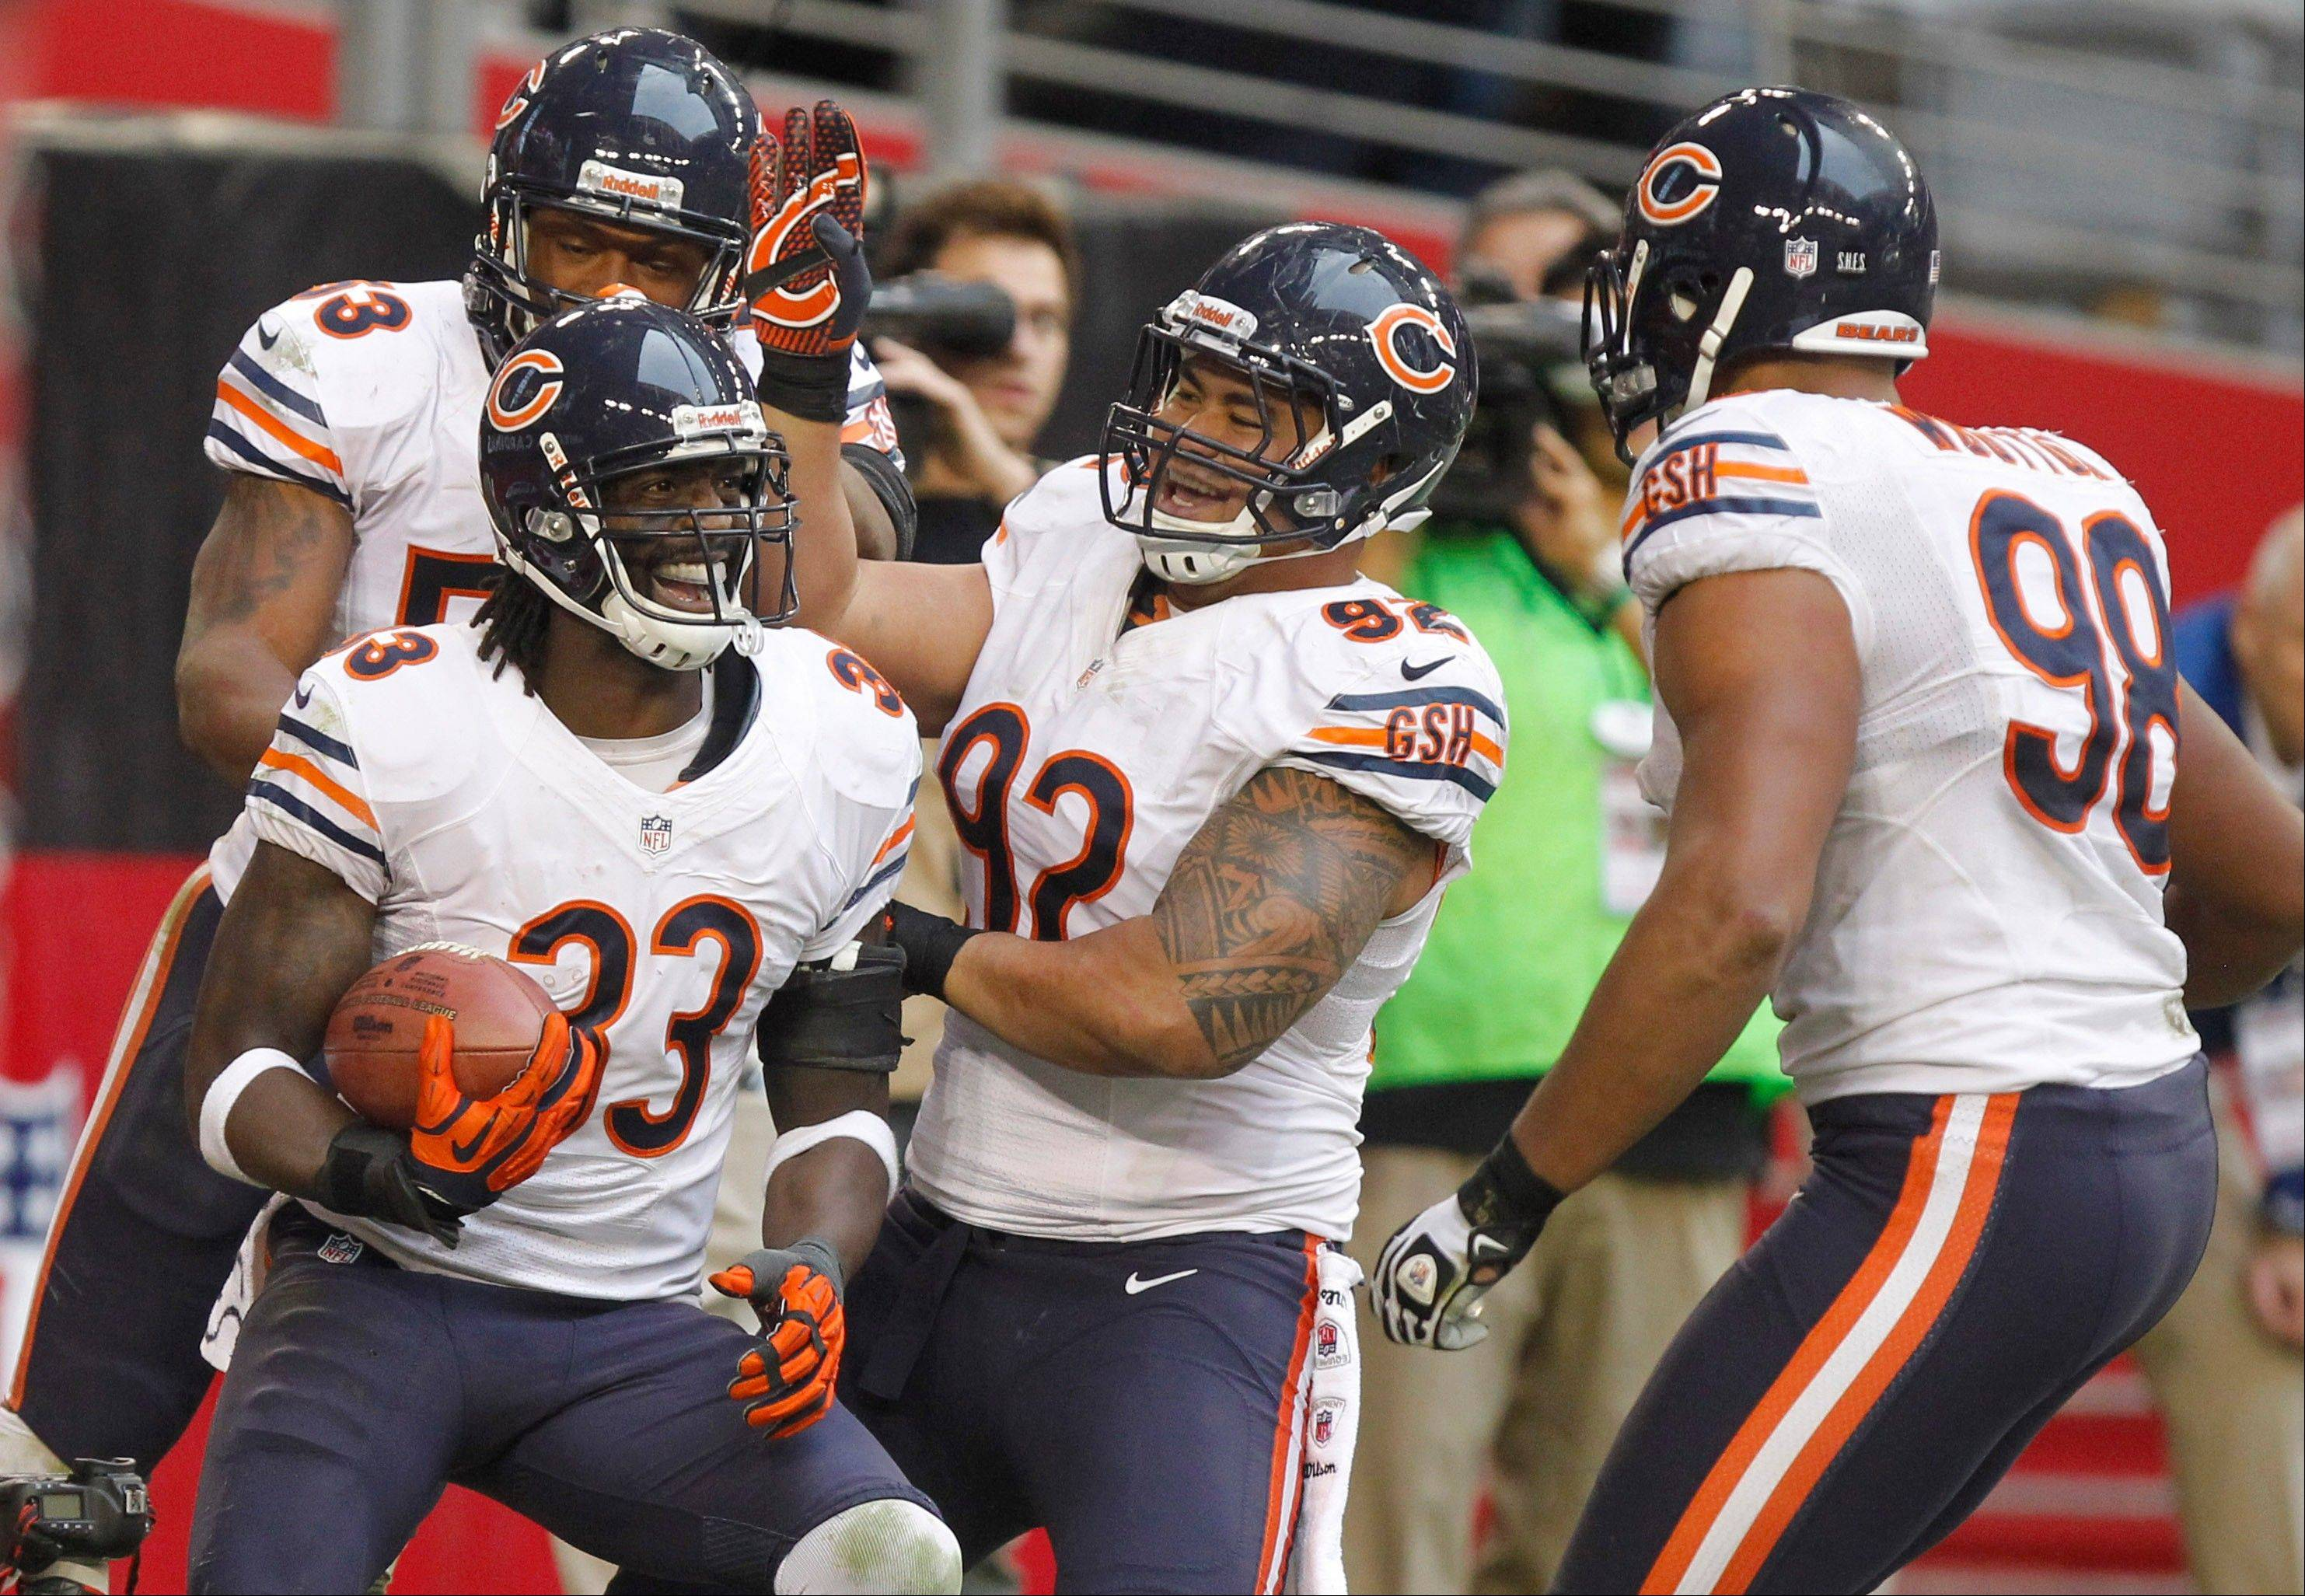 Chicago Bears cornerback Charles Tillman (33) celebrates his touchdown with teammates Stephen Paea (92), Nick Roach (53) and Corey Wootton (98) during the second half.